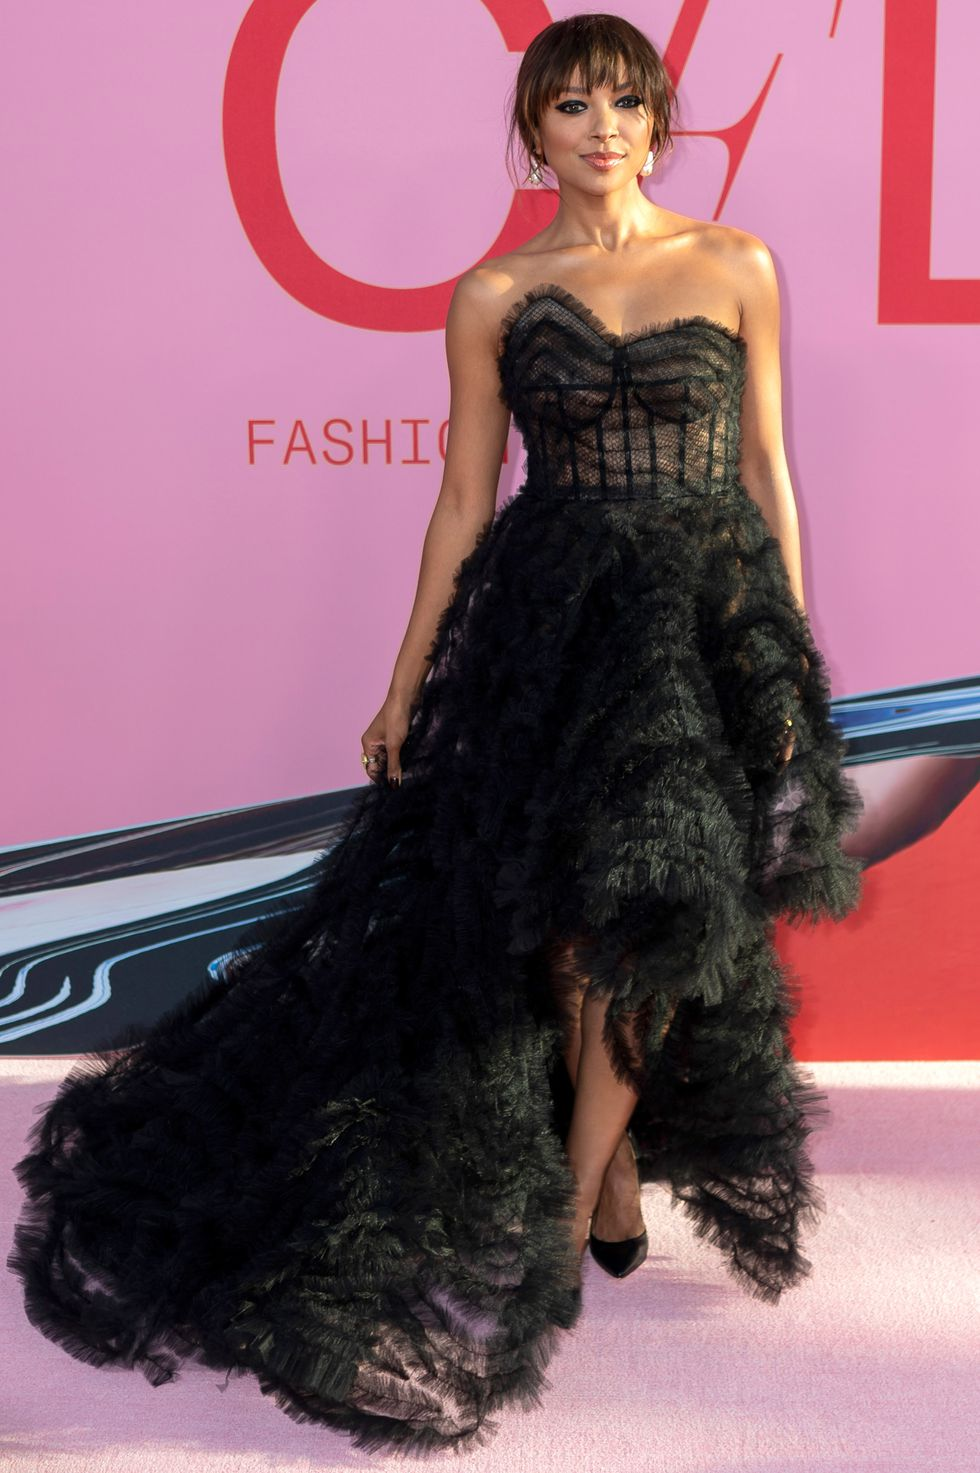 kat-graham-attends-the-2019-cfda-fashion-awards-at-the-news-photo-1153574670-1559634159.jpg